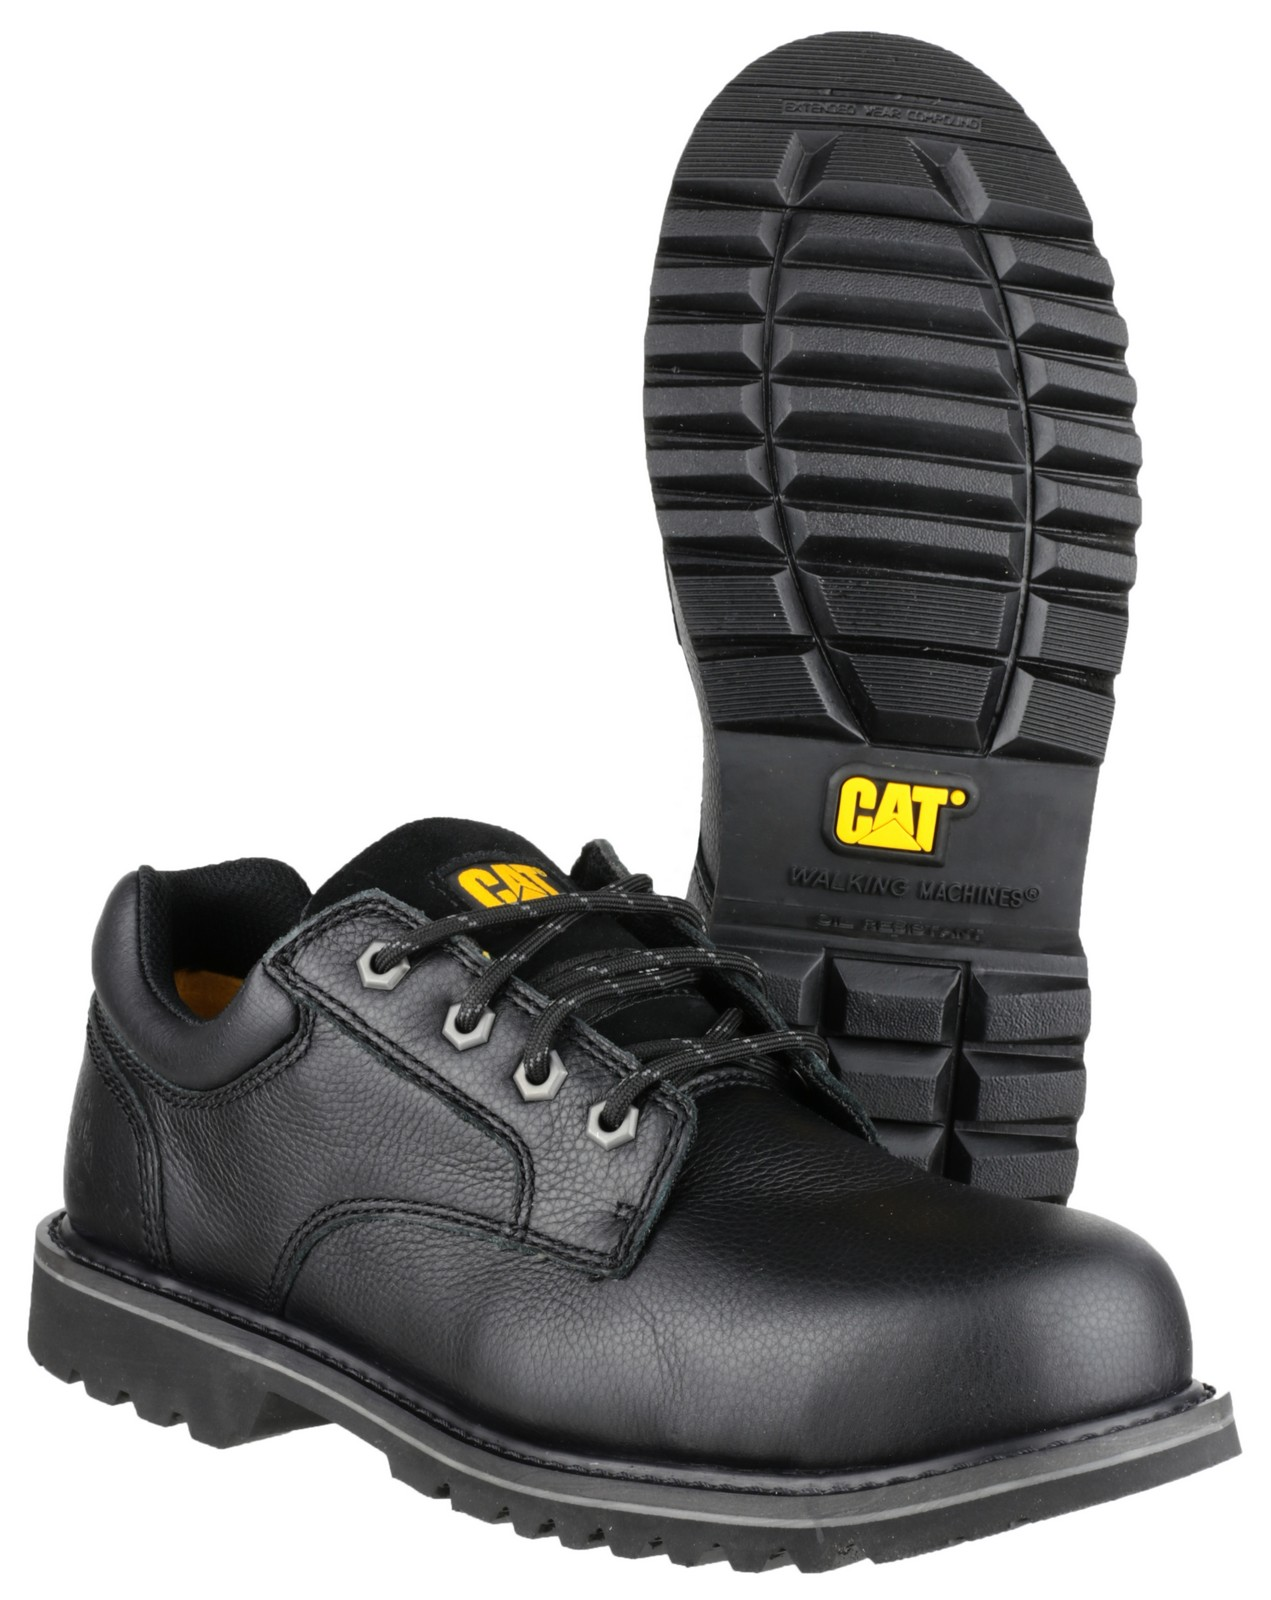 Best Shop To Buy Work Shoes From